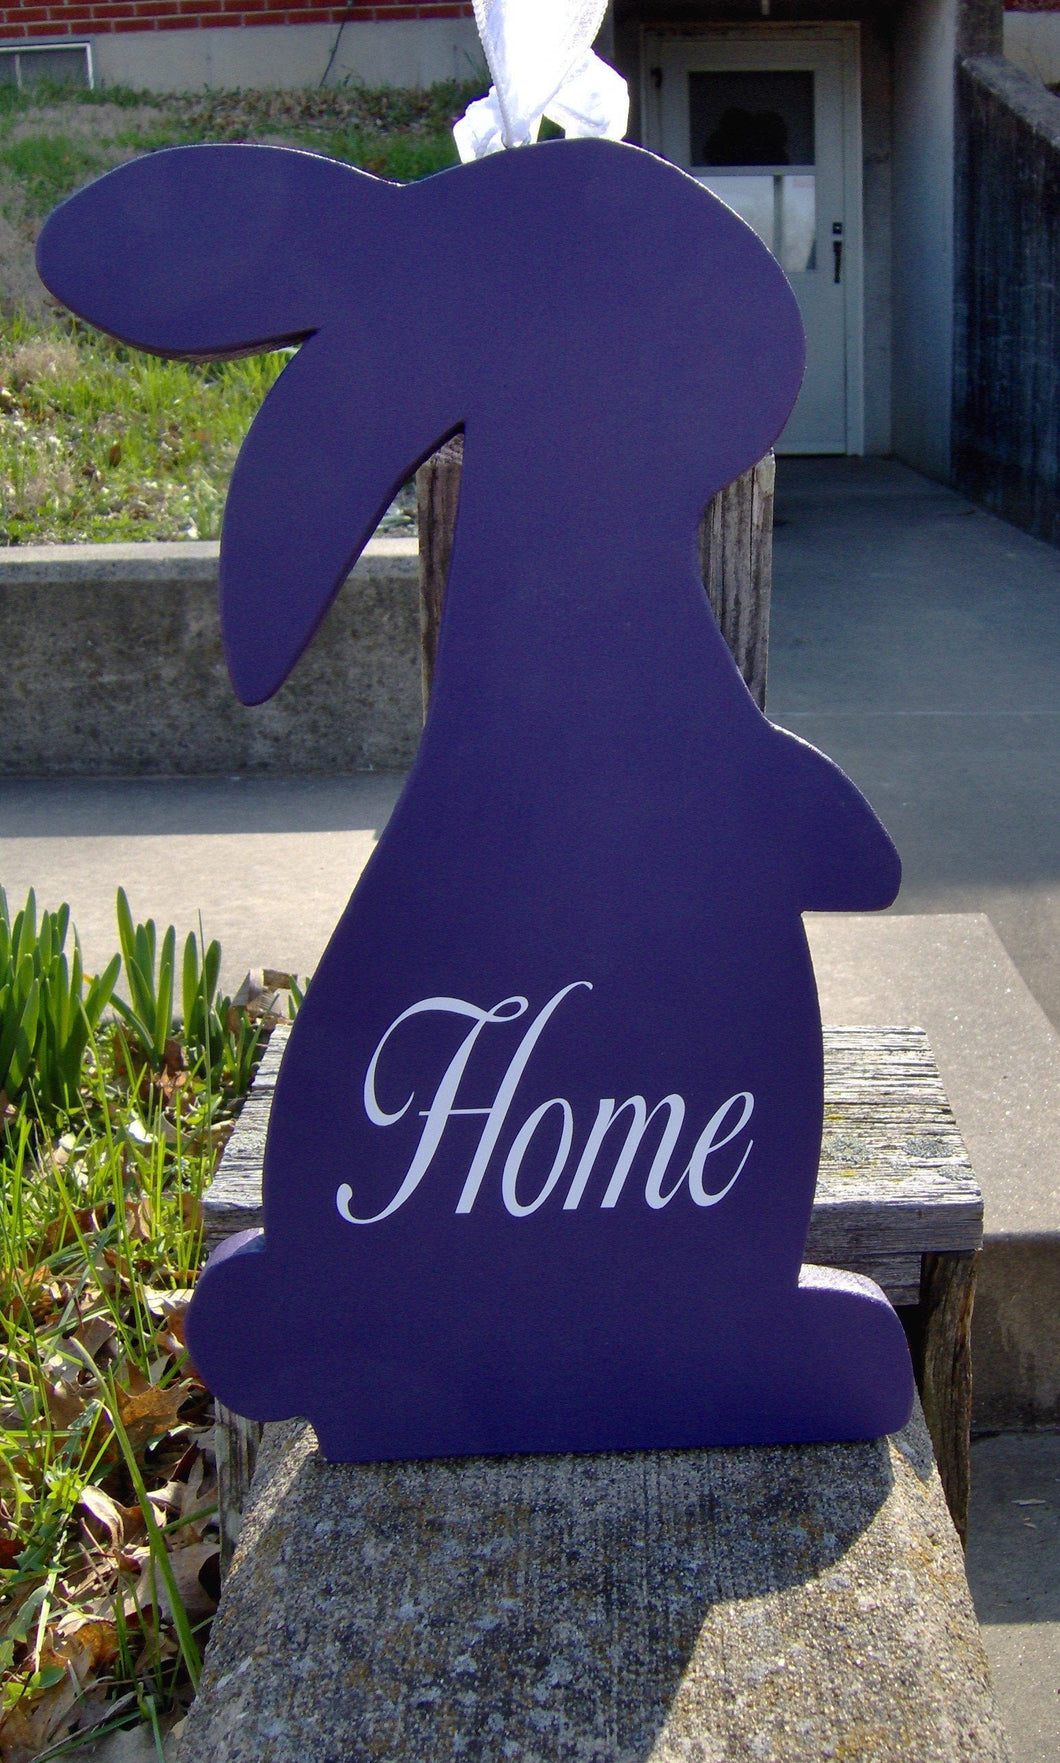 Bunny Rabbit Cutout Wood Vinyl Sign Porch Sign Home Decor Daily Front Door Decor Privacy Purple Outdoor Entryway Sign Holiday Themed Signage - Heartfelt Giver